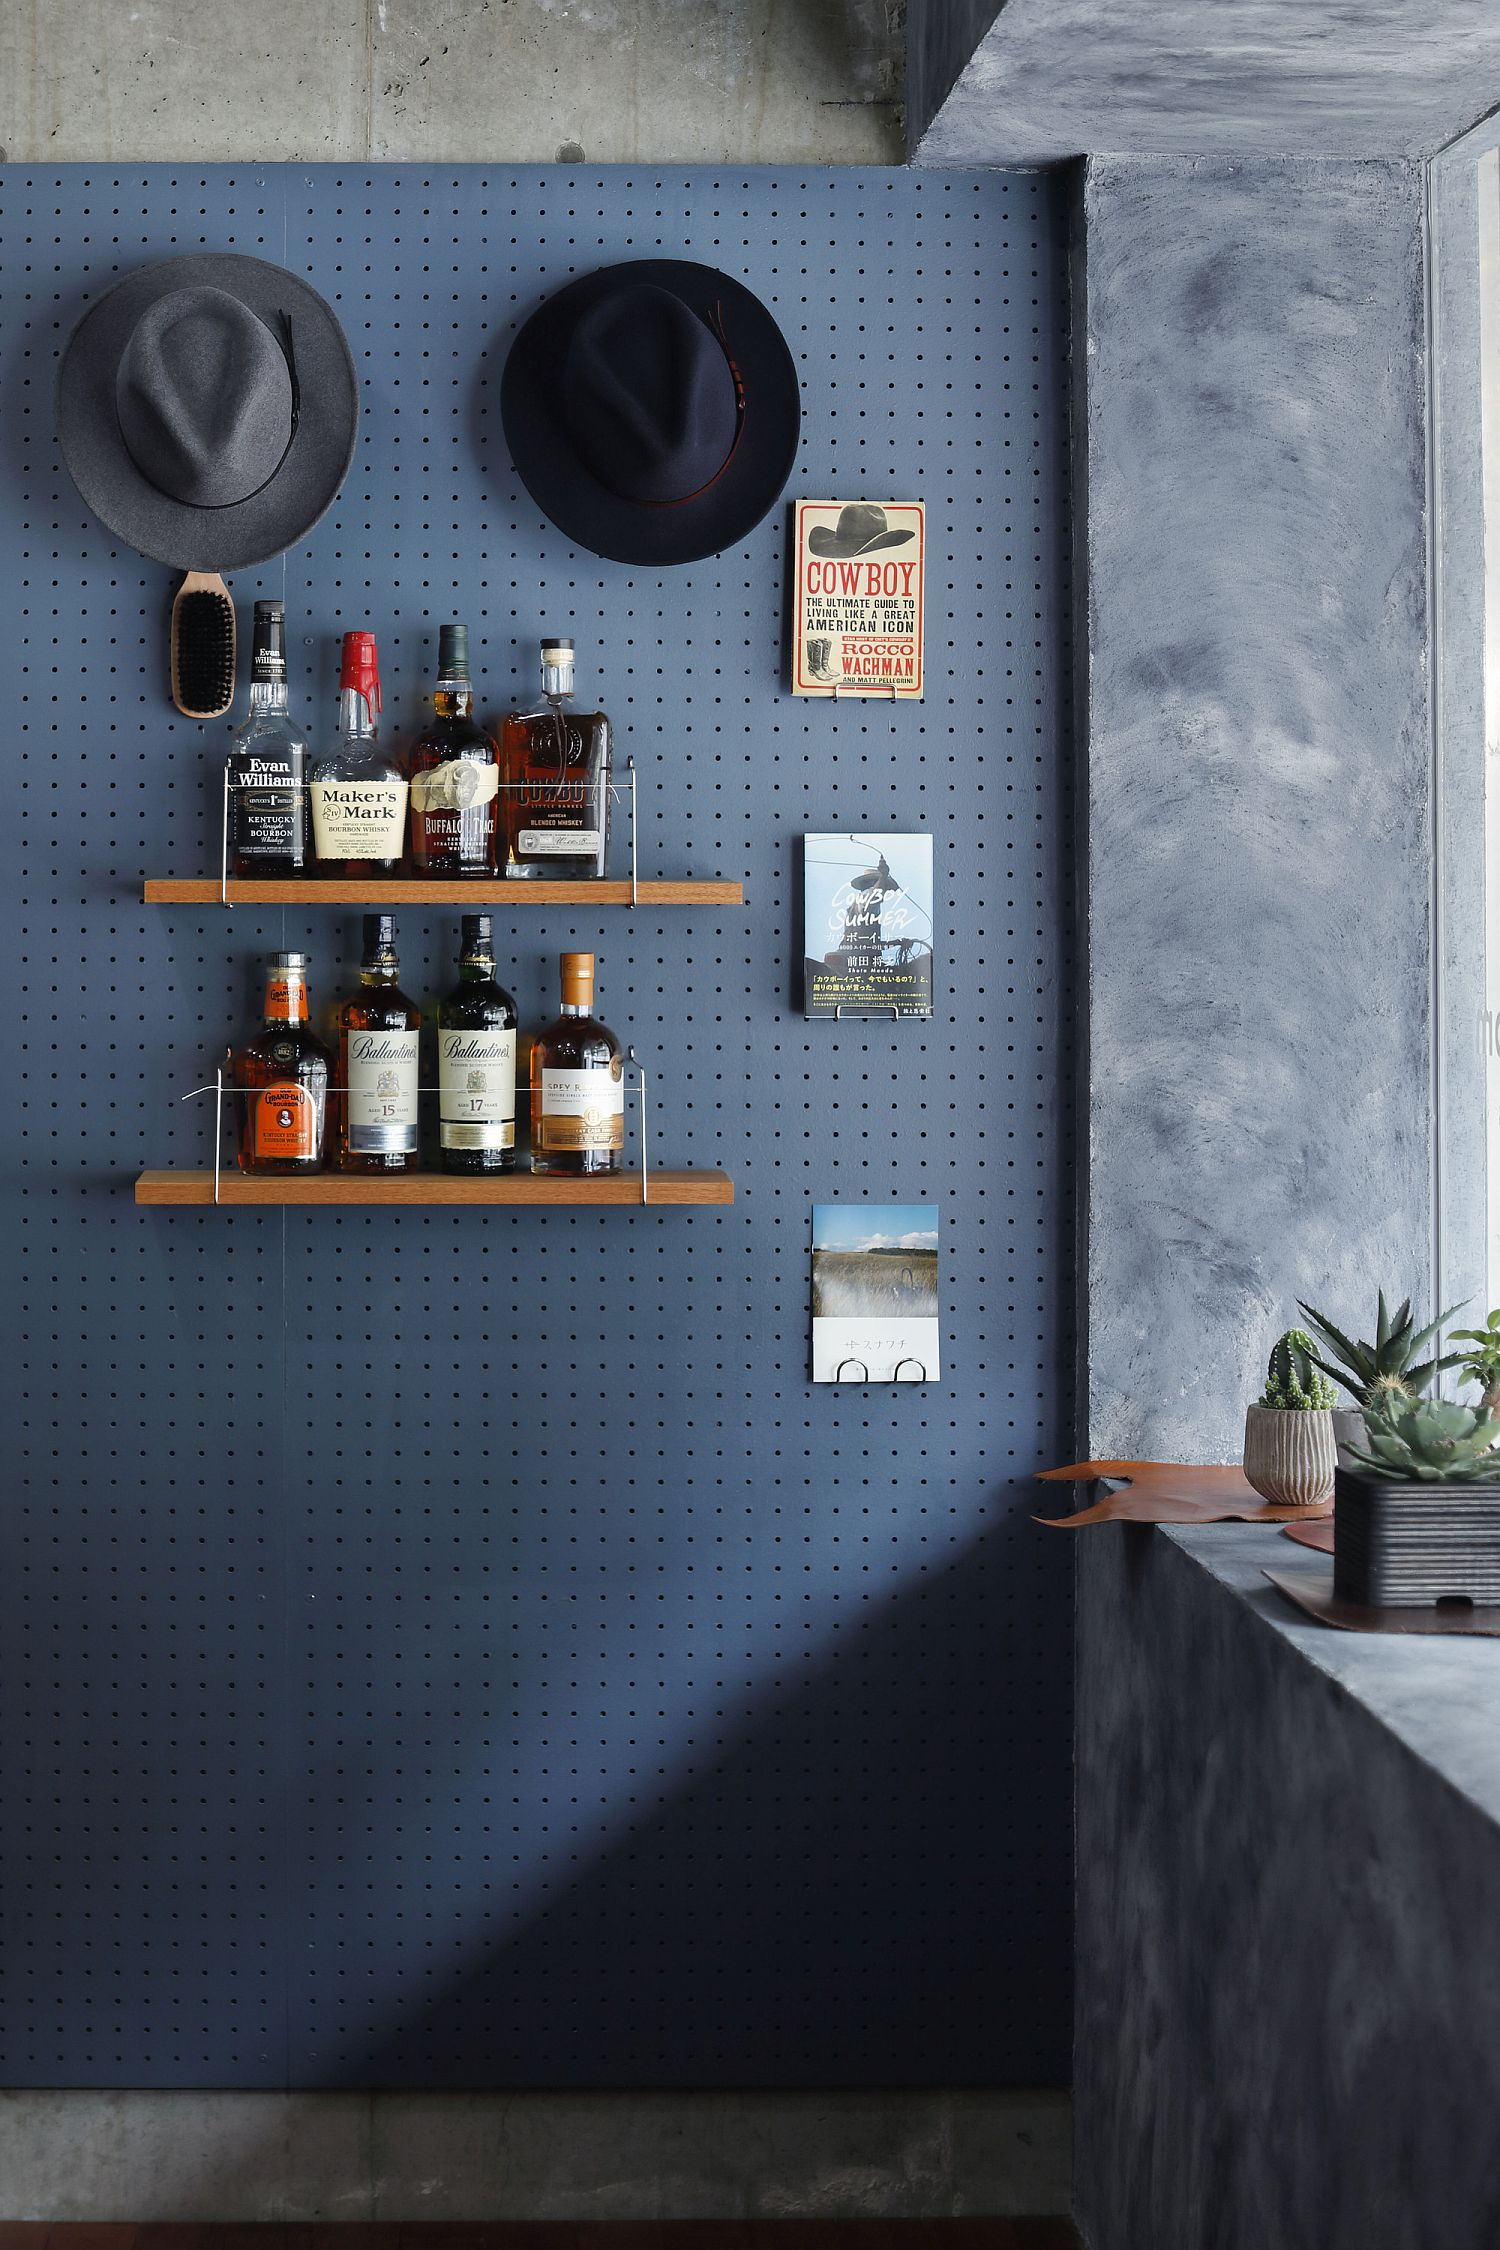 Pegboard wall at the entrance of the shop offers space to hang your hats and coats